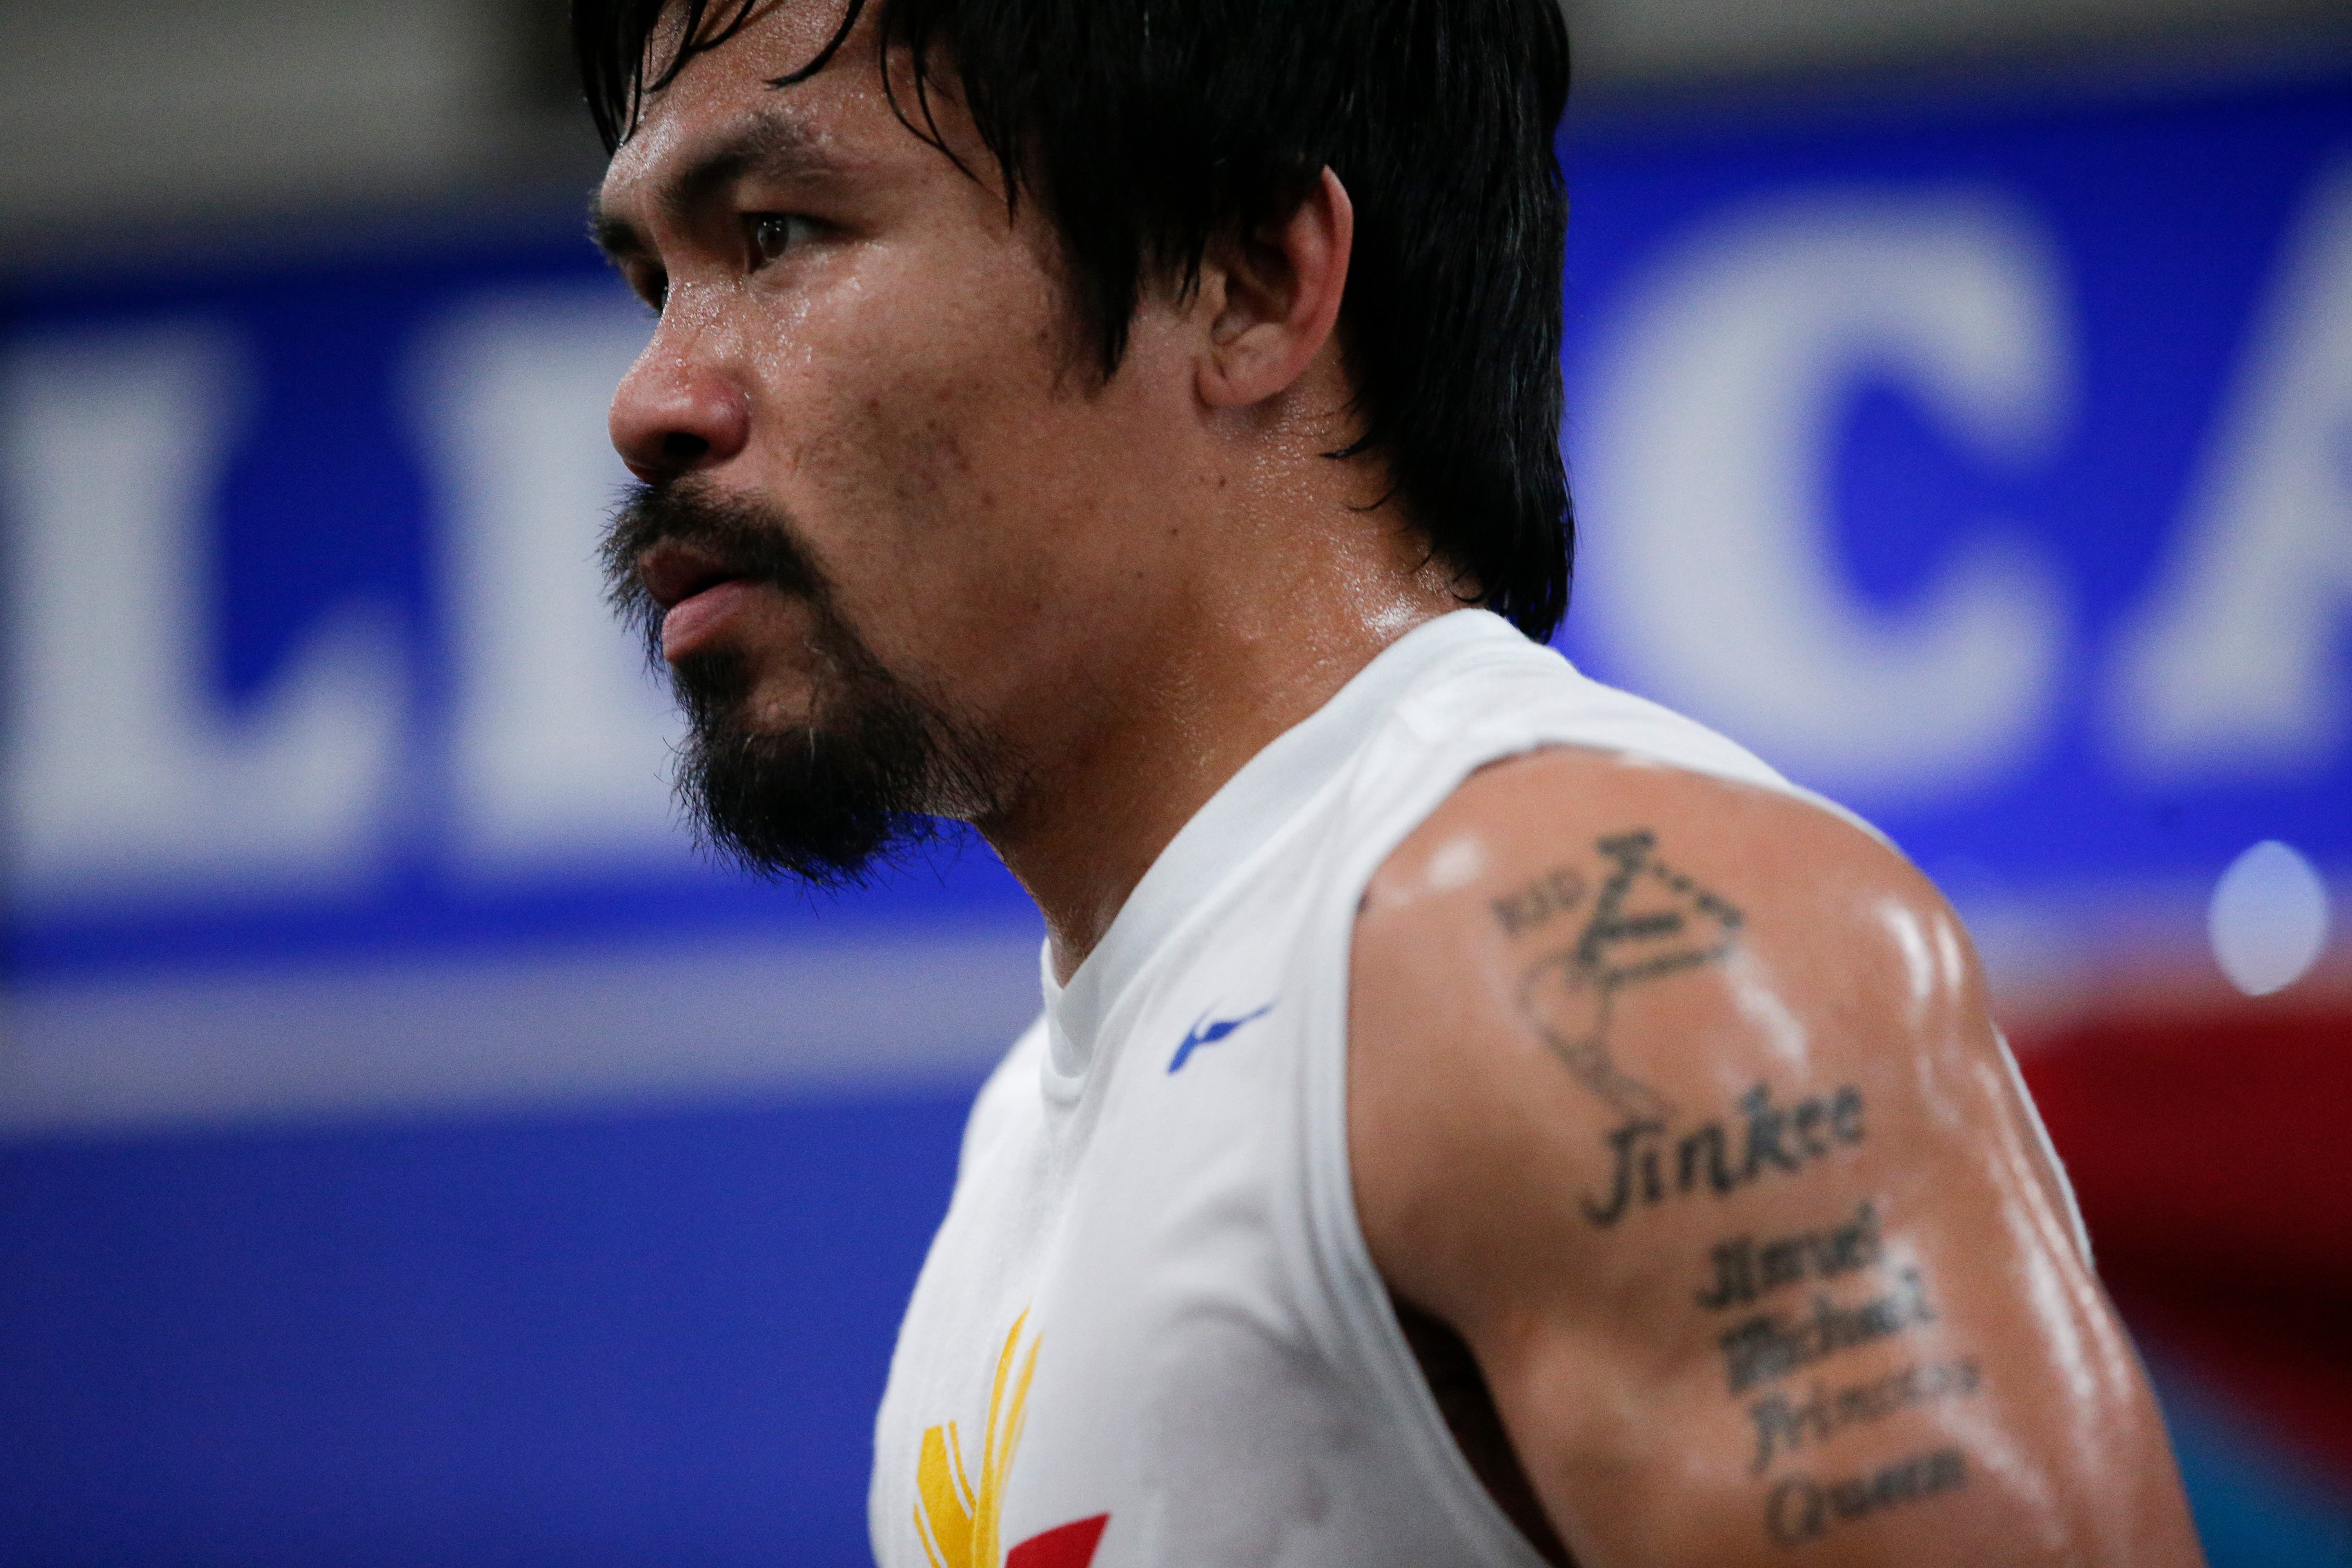 Boxer Manny Pacquiao, of the Philippines, is covered in sweat during his workout, Monday, April 13, 2015, in Los Angeles. Pacquiao will face Floyd Mayweather Jr. in a welterweight boxing match in Las Vegas on May 2. (AP Photo/Jae C. Hong)